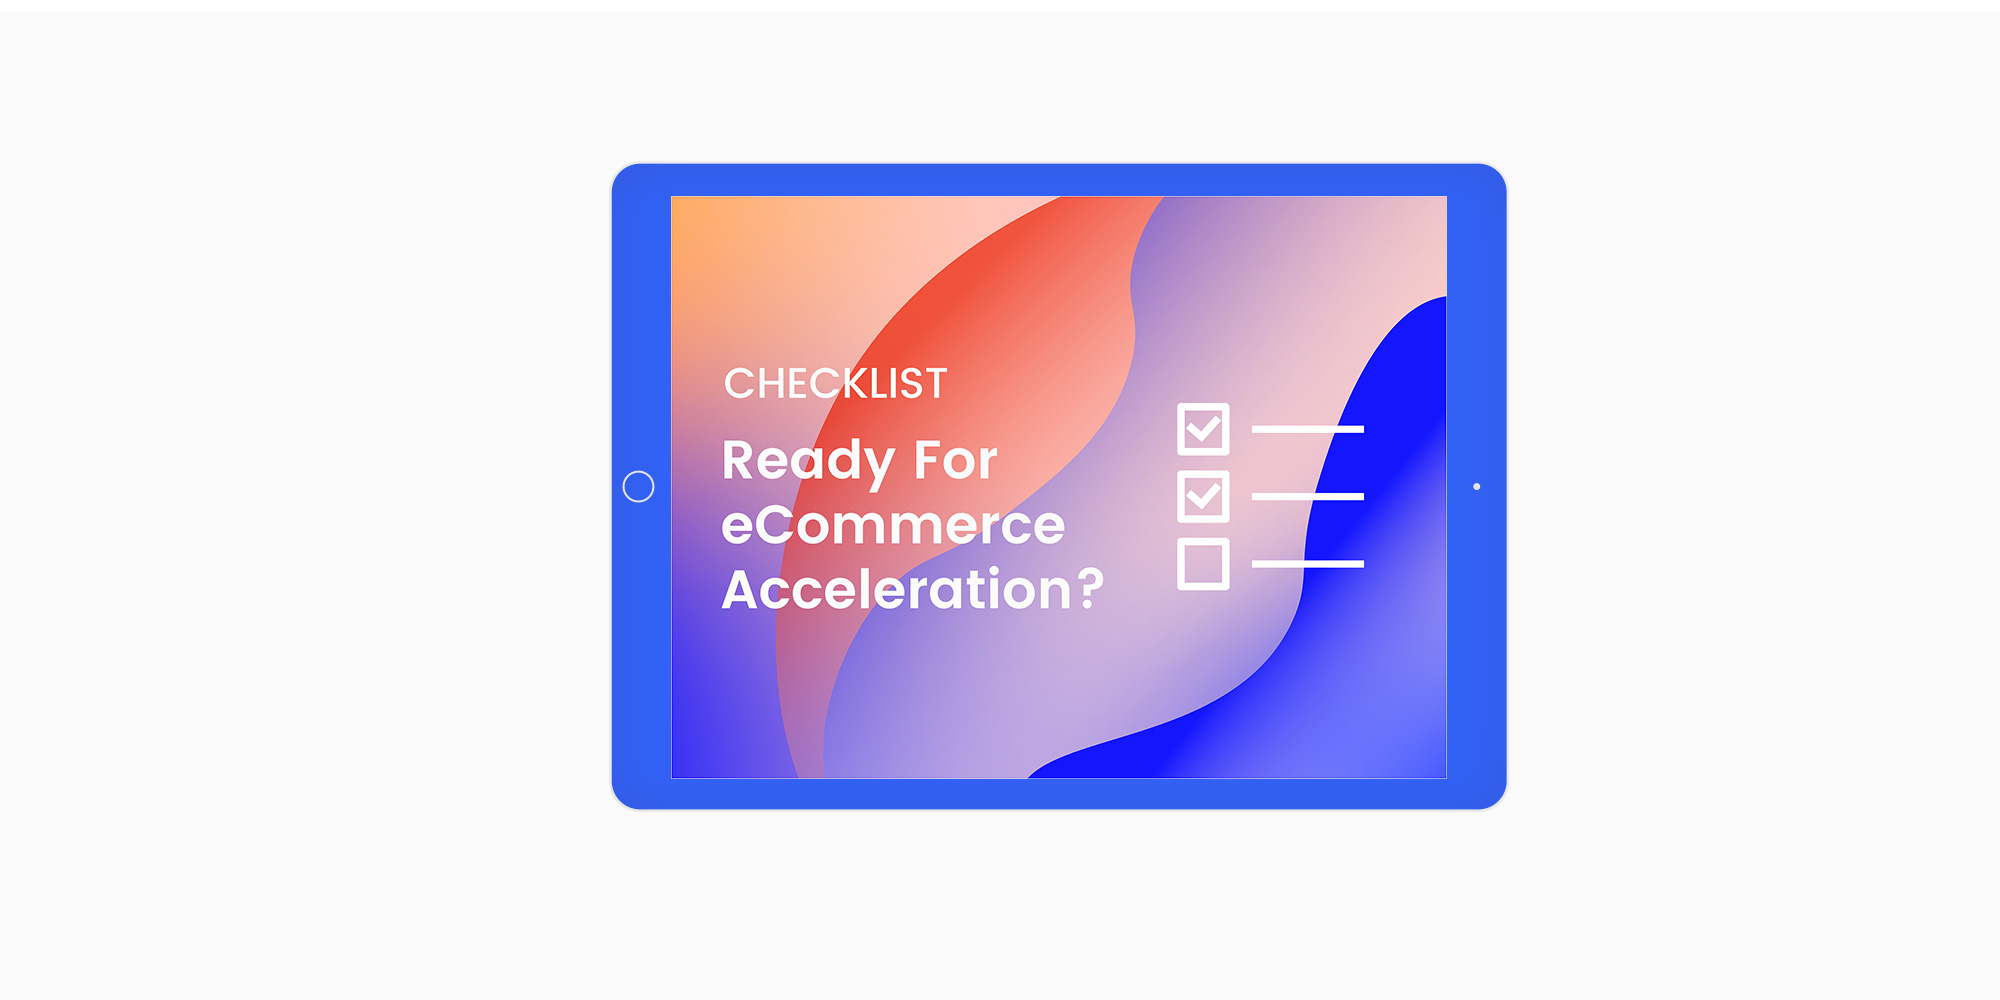 Checklist for eCommerce Acceleration